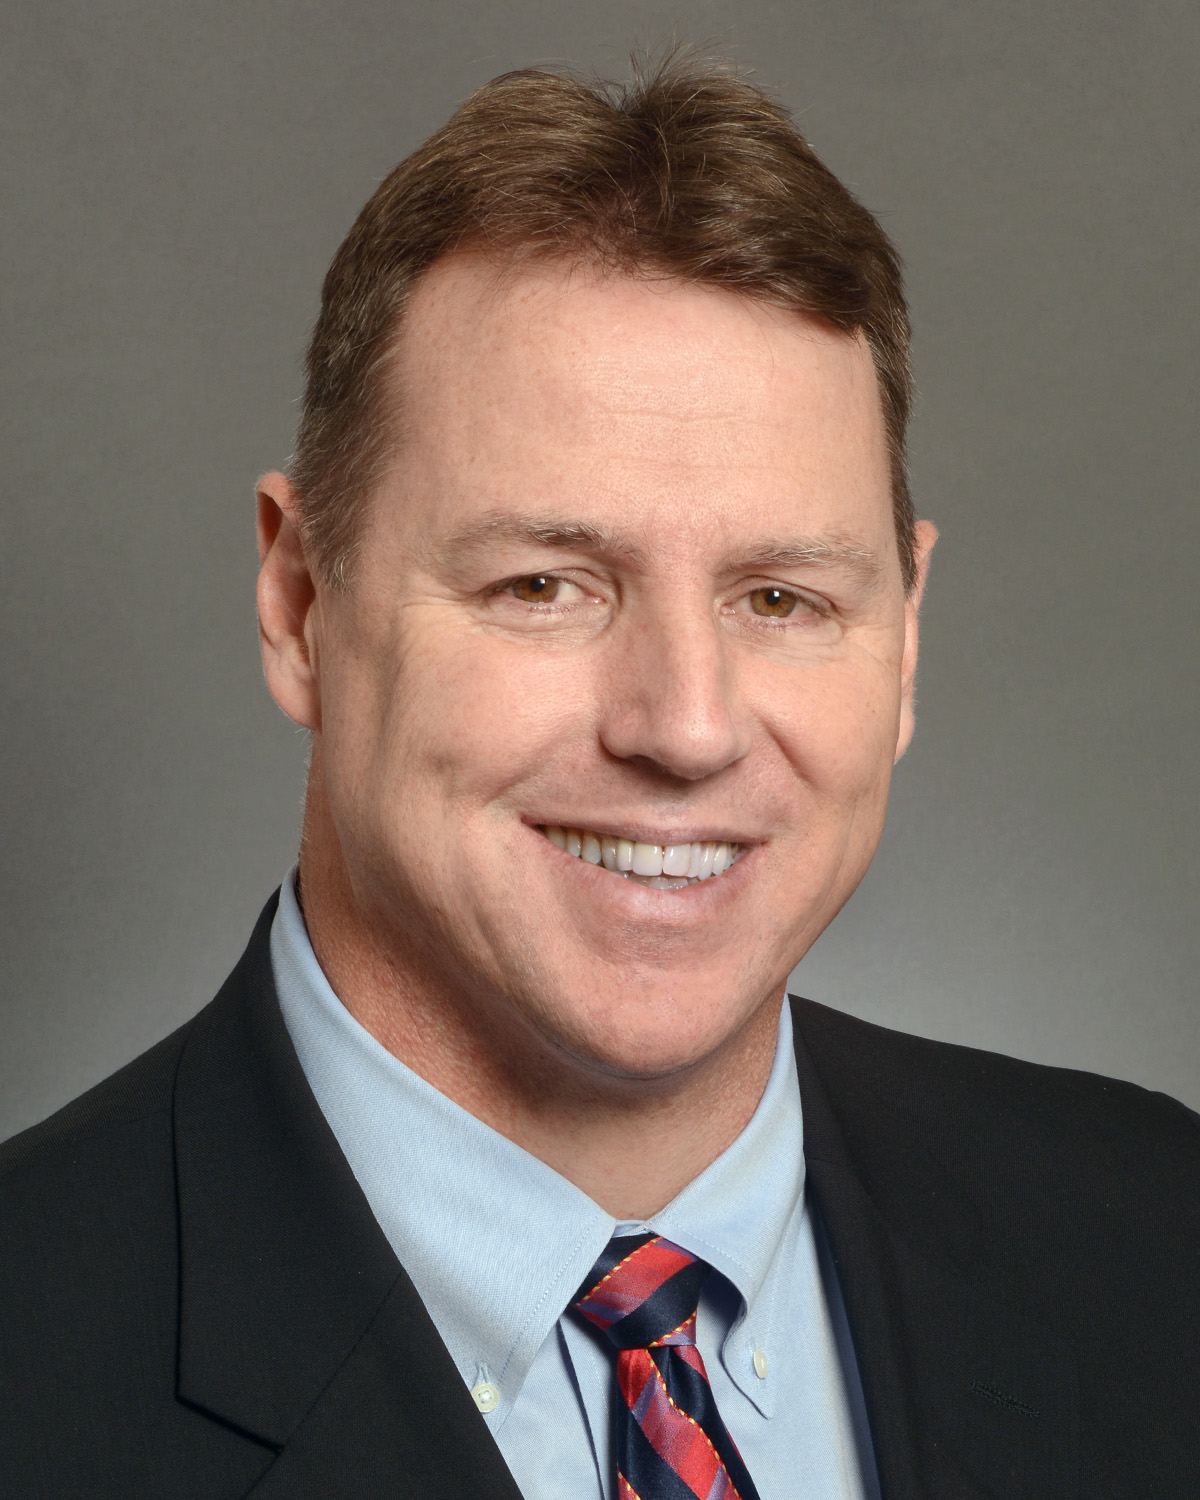 Senator Nick Frentz